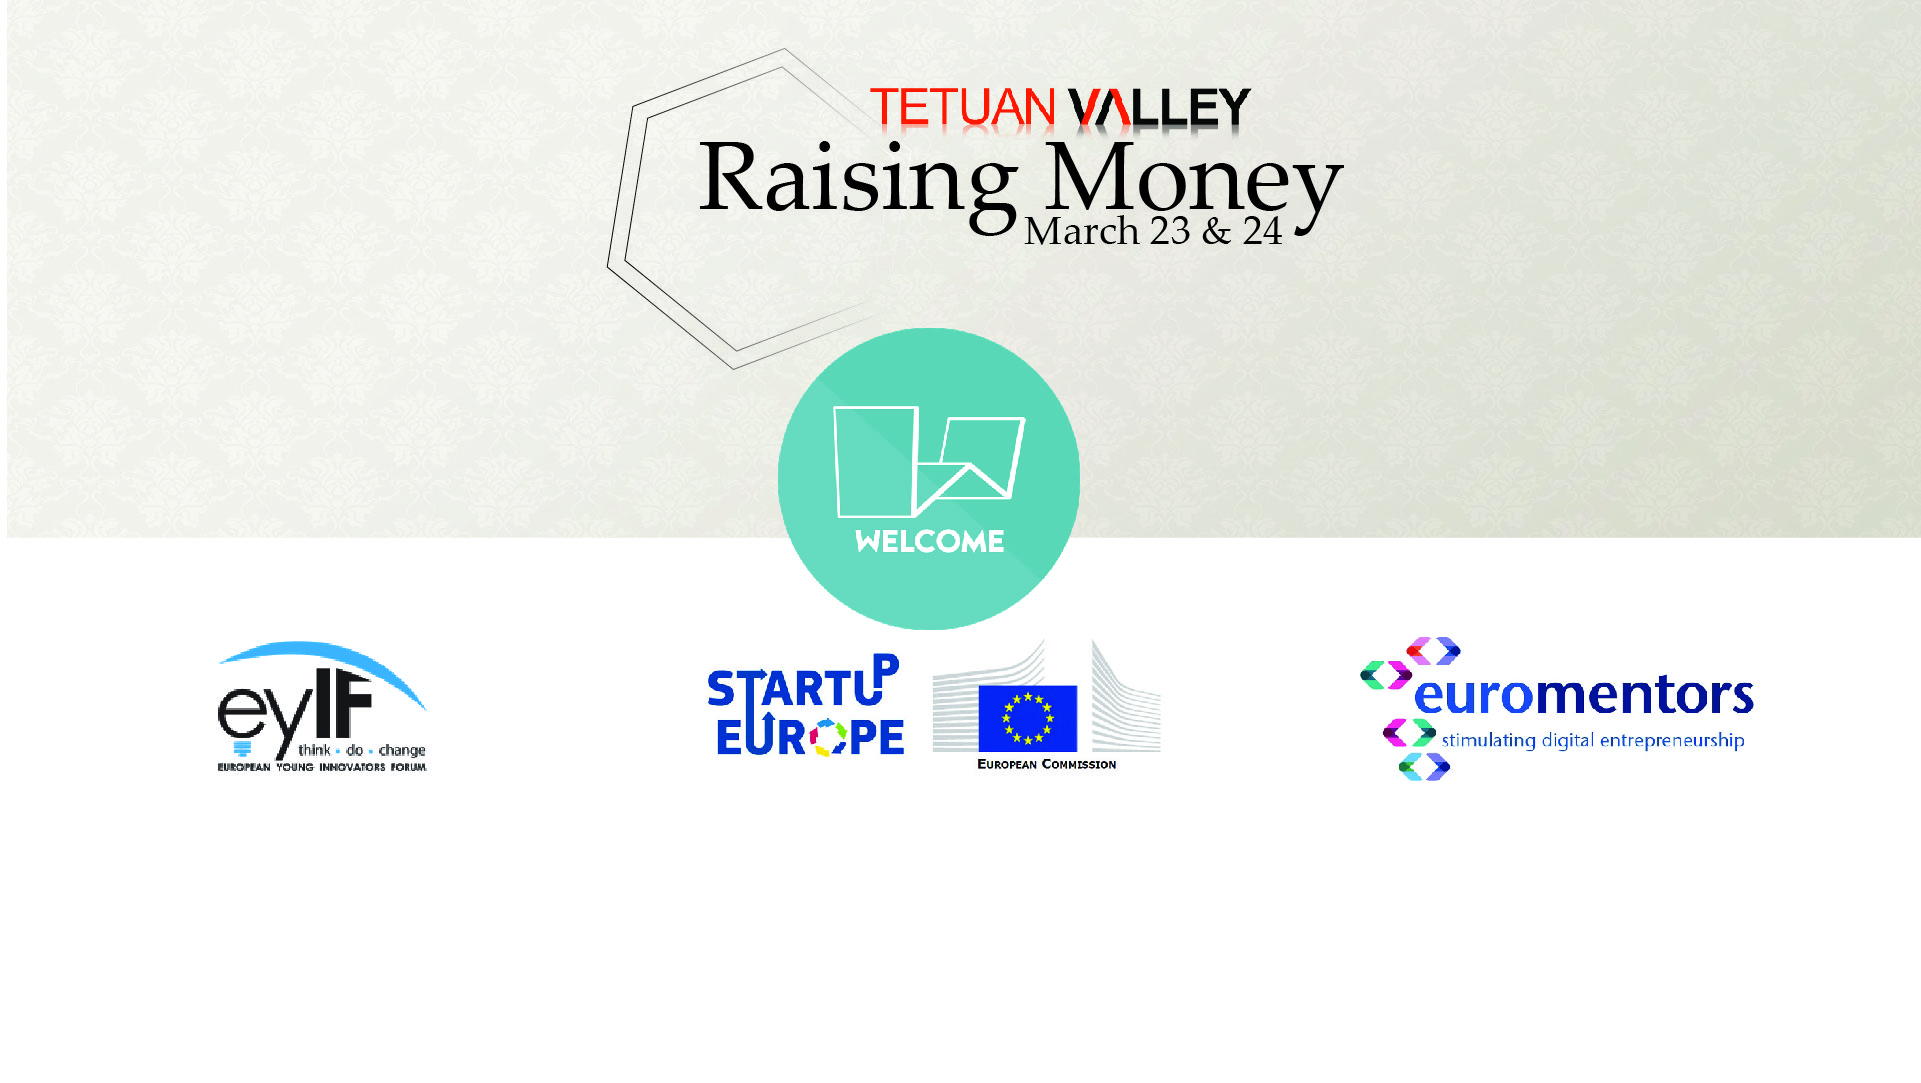 Tetuan Valley organiza Raising Money